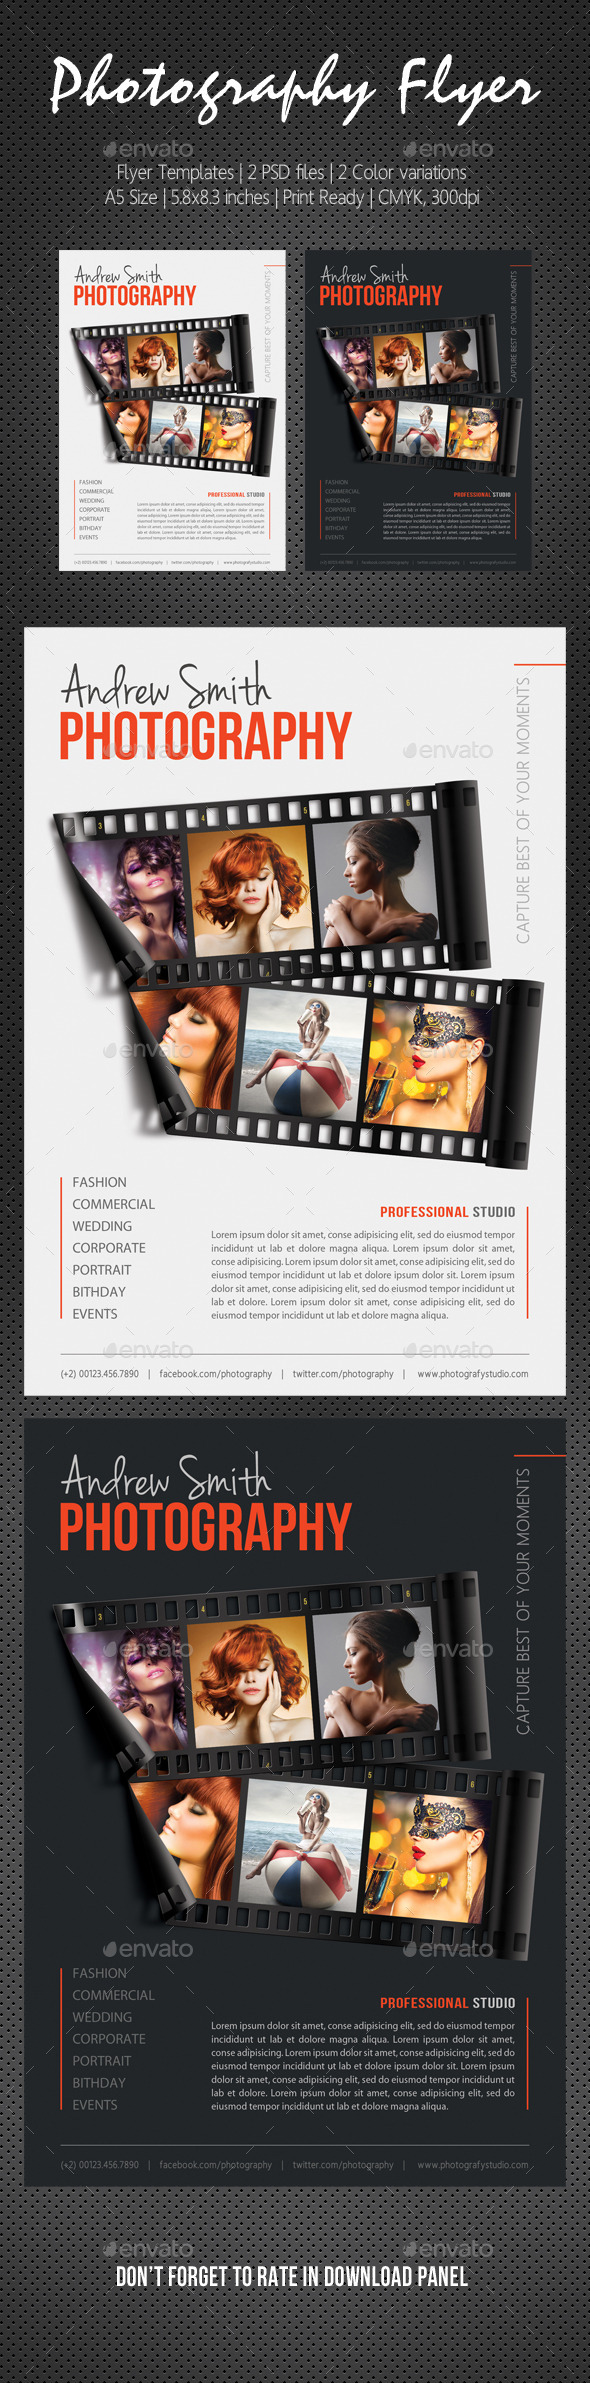 Photography Studio Flyer 16 - Corporate Flyers